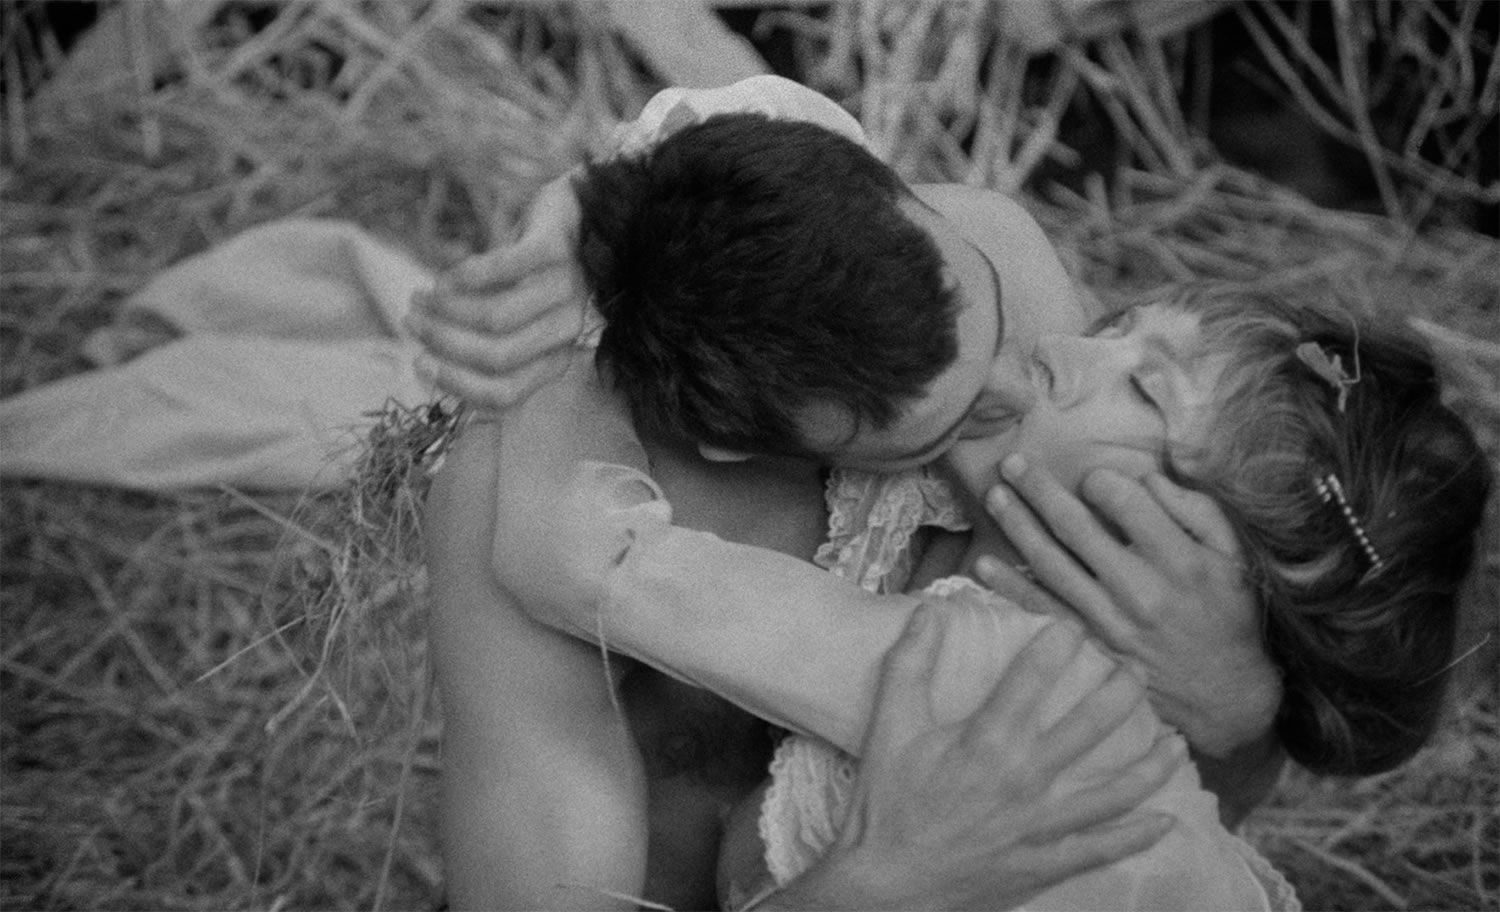 romantic kiss, Goto, Isle of Love (1969)